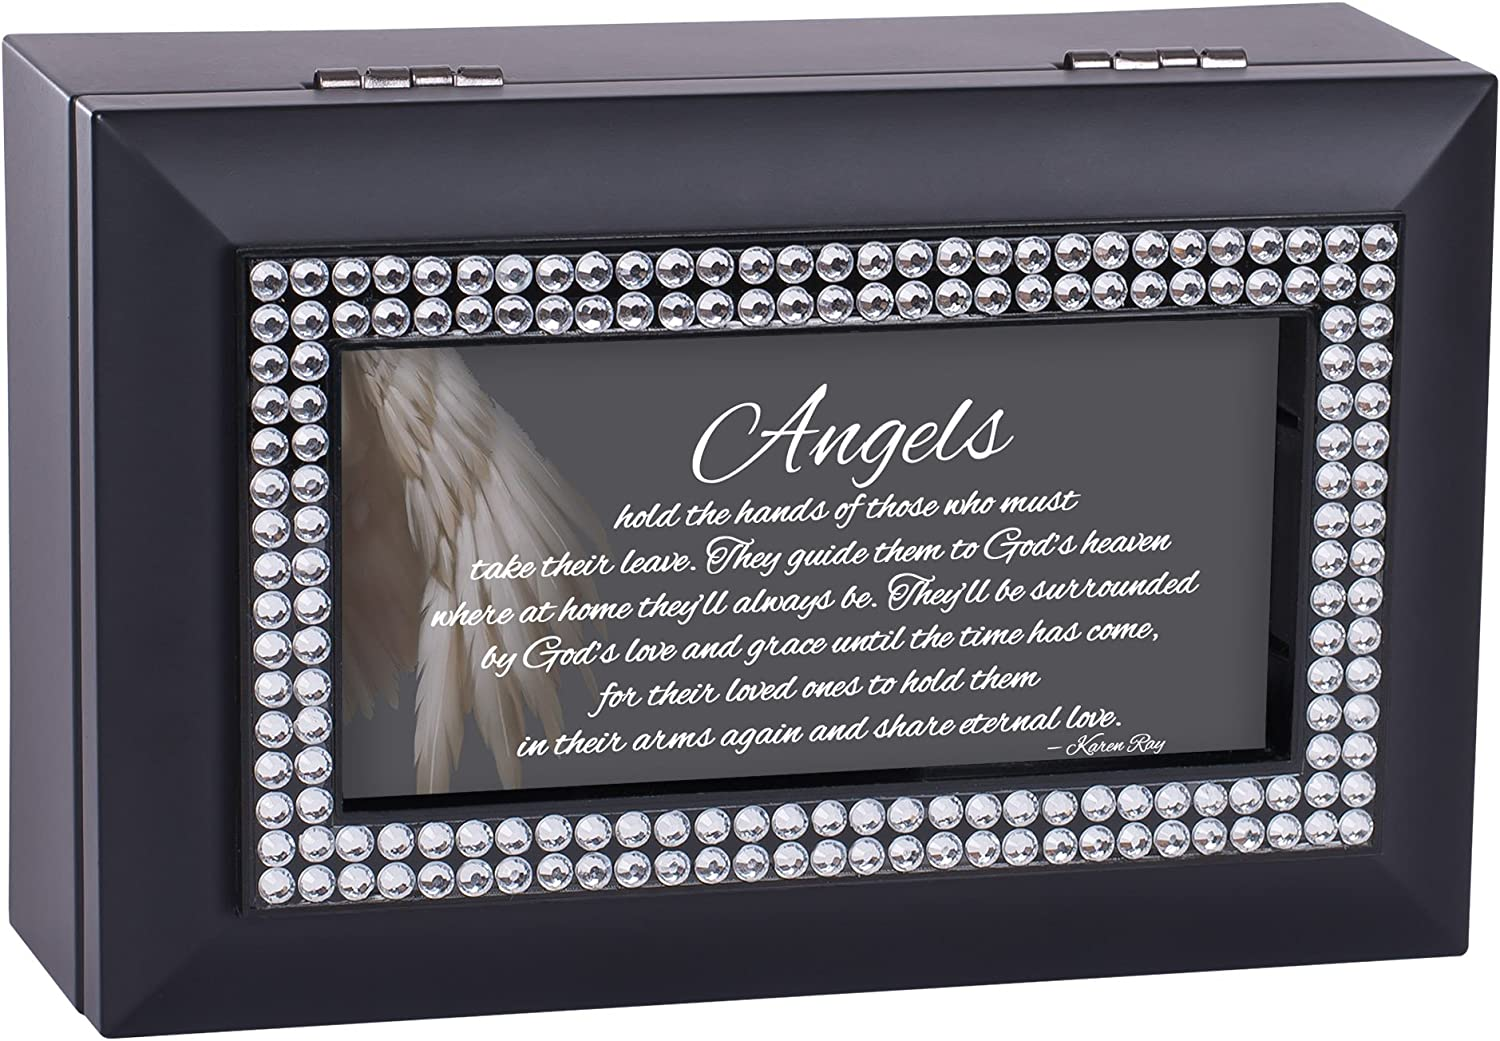 Cottage Garden Angels Hold Hands Matte Black Jewelry Music Box Plays Amazing Grace